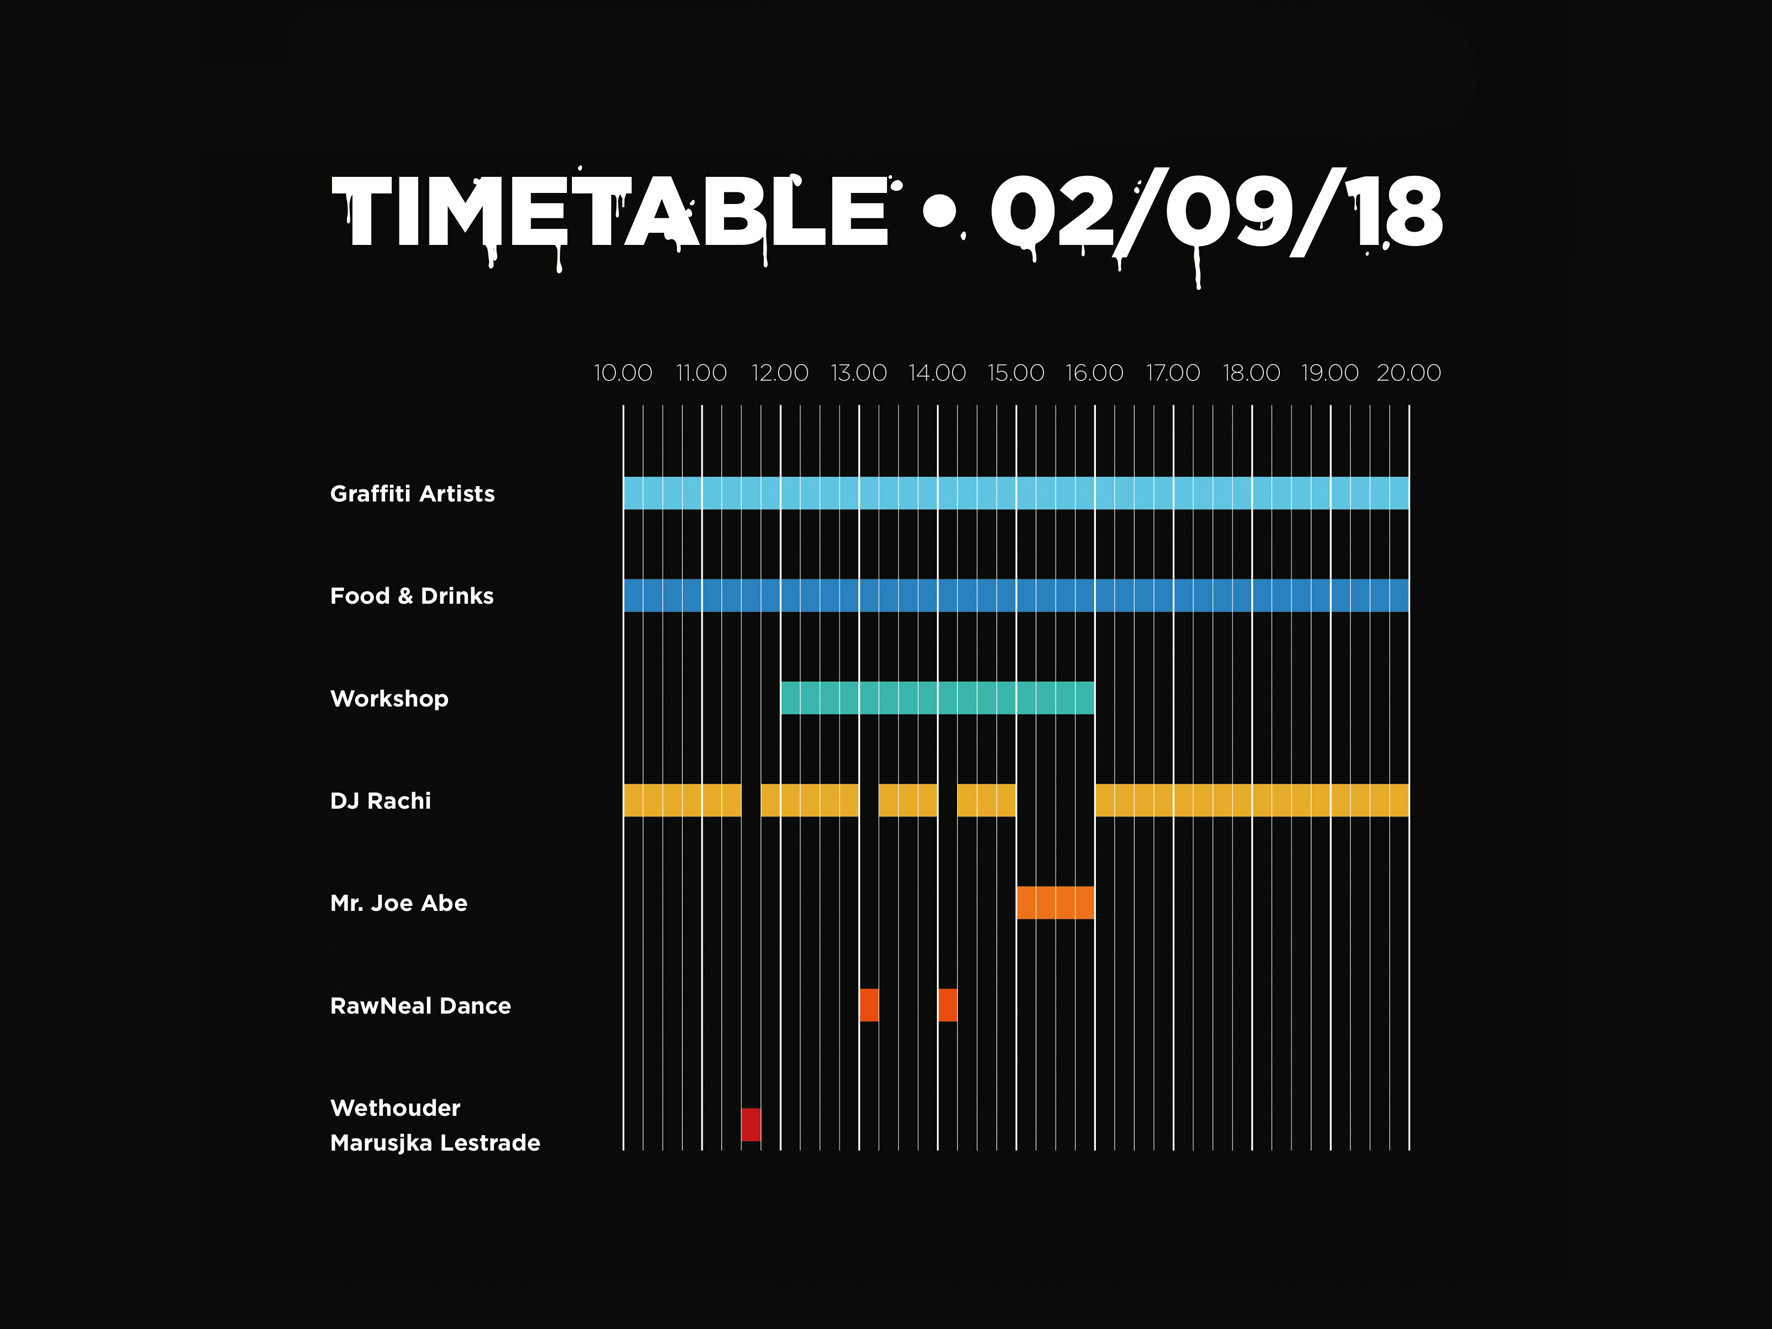 Timetable Edition 3.0